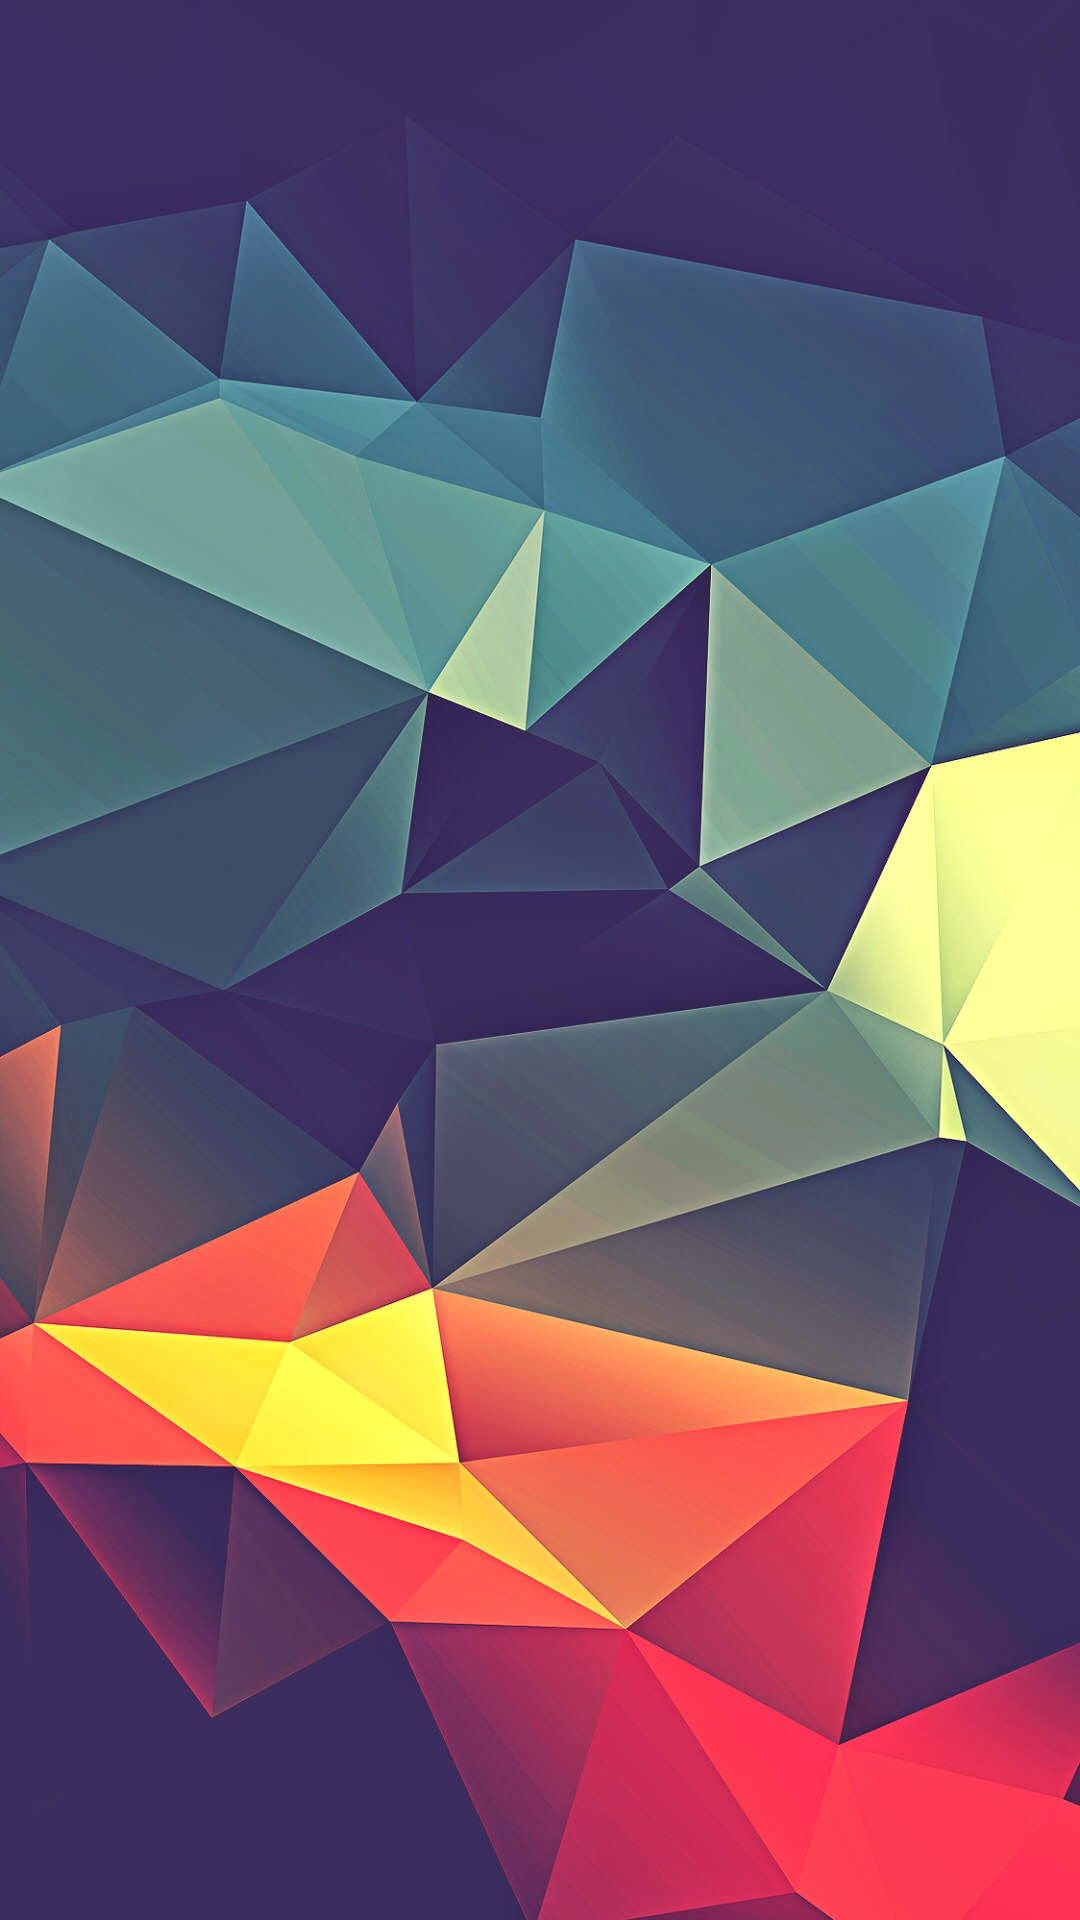 60 Clever Abstract Iphone Wallpapers For Art Lovers Fondo